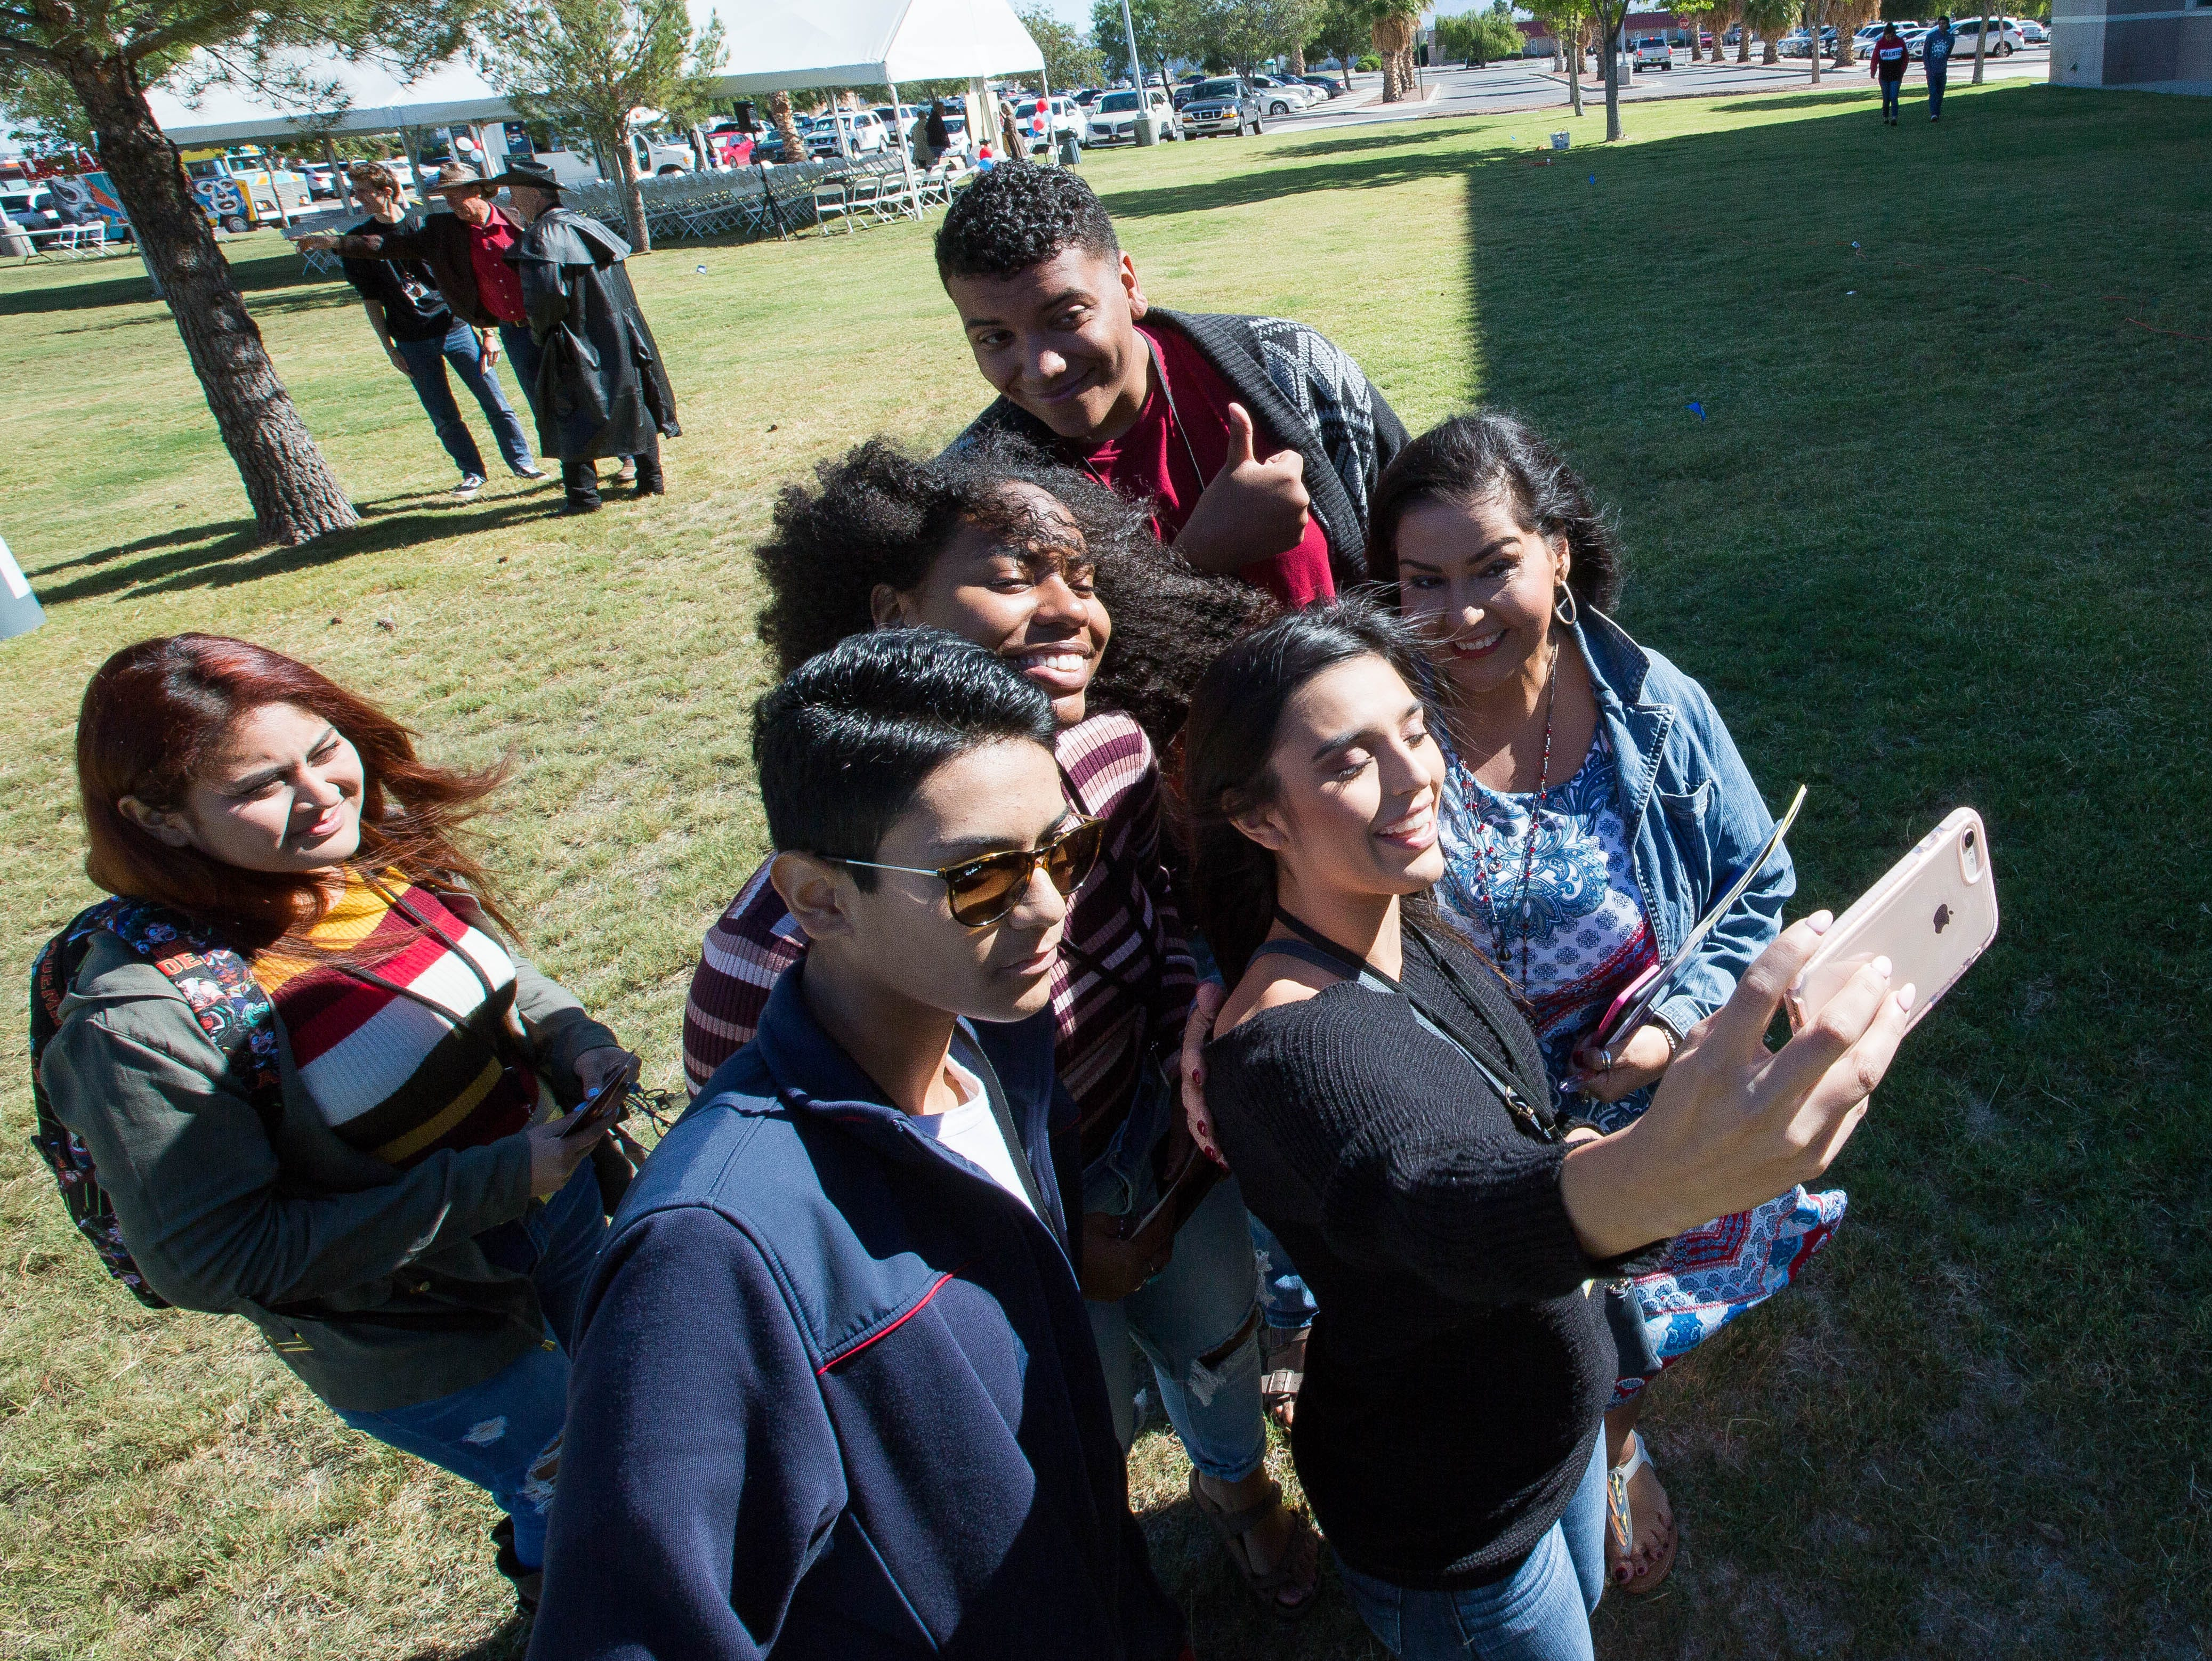 Amanda Askin, Doña Ana County Clerk, right, takes a photo with a group of students from Mayfield High School, Tuesday Oct. 9, 2018 at the Doña Ana County Government Center during the Celebrating Democracy event, held for around 300 seniors from area high schools.